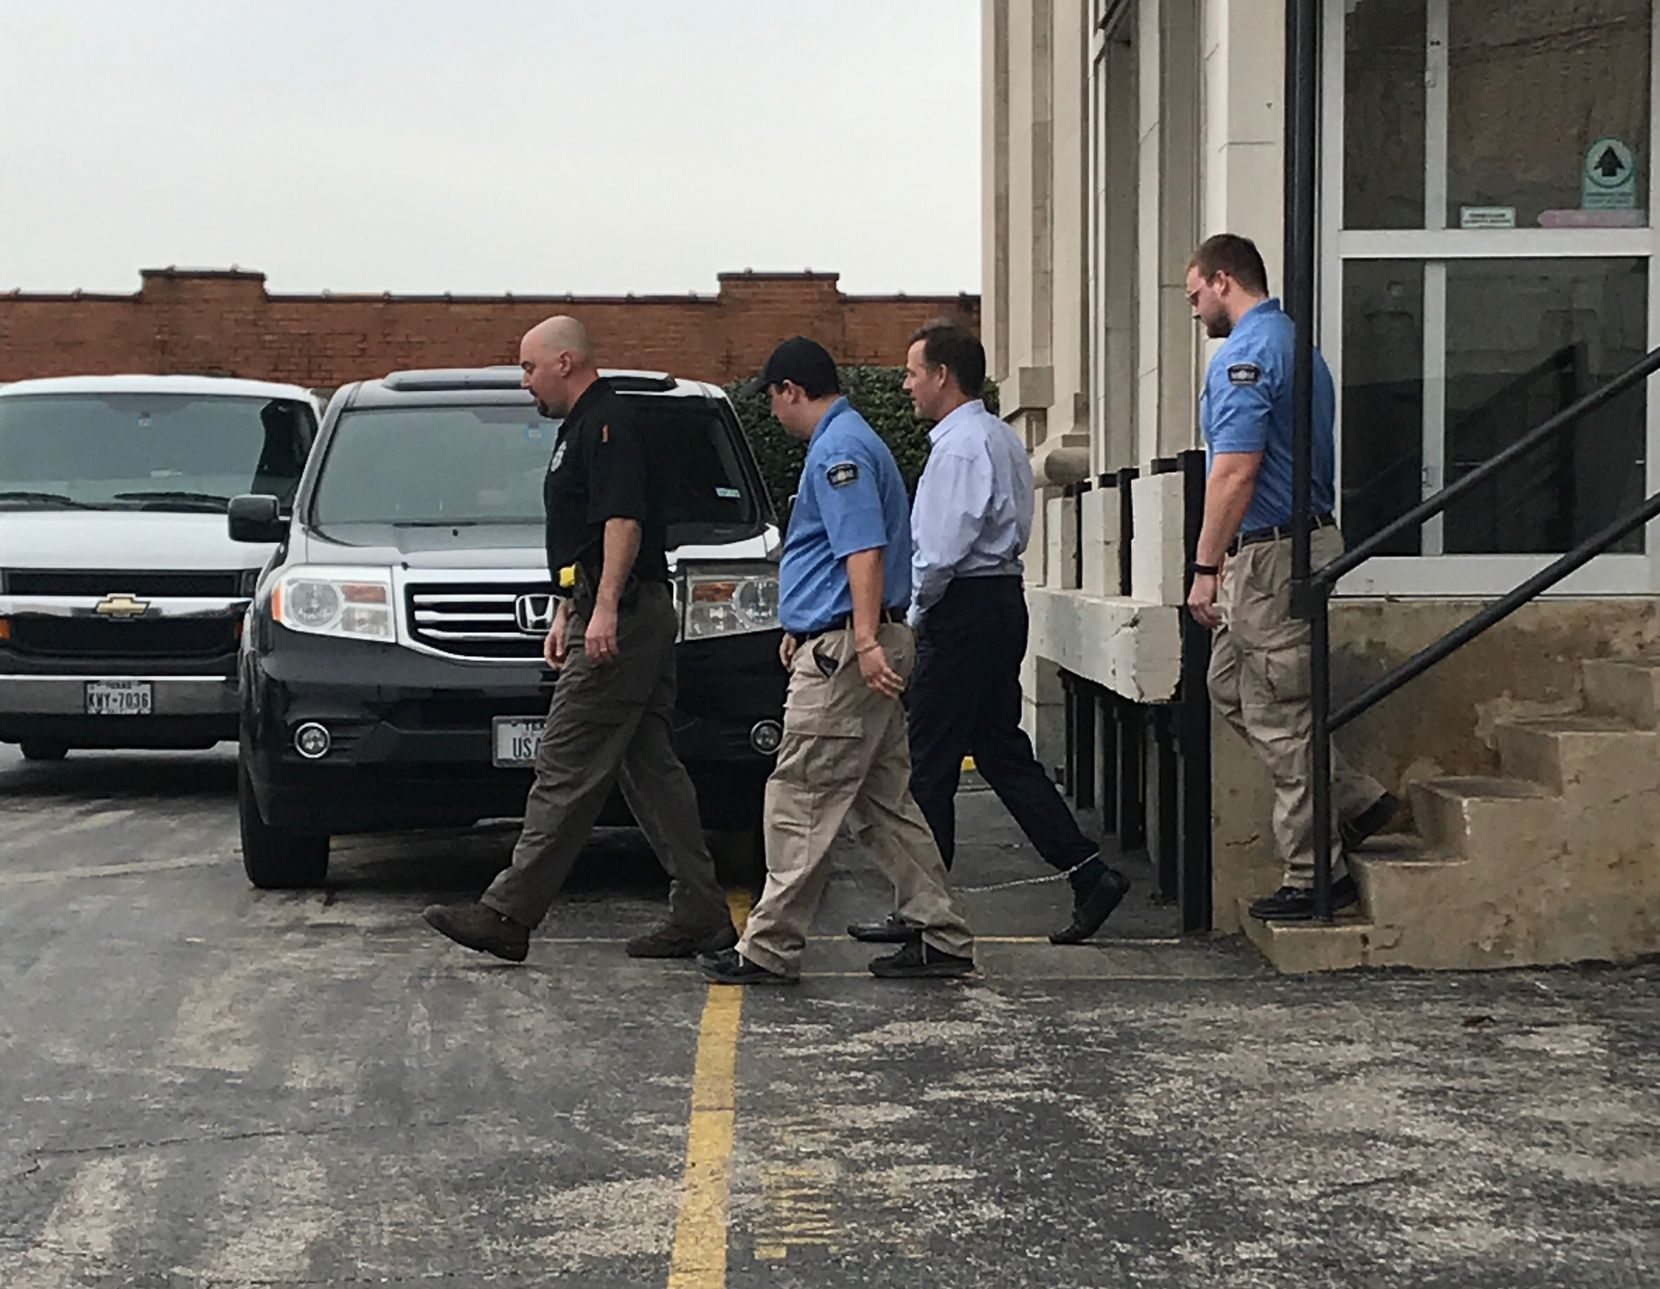 Mark Jordan (second from right) left the Sherman federal courthouse in handcuffs and shackles after being found guilty in March. He was later released from custody.